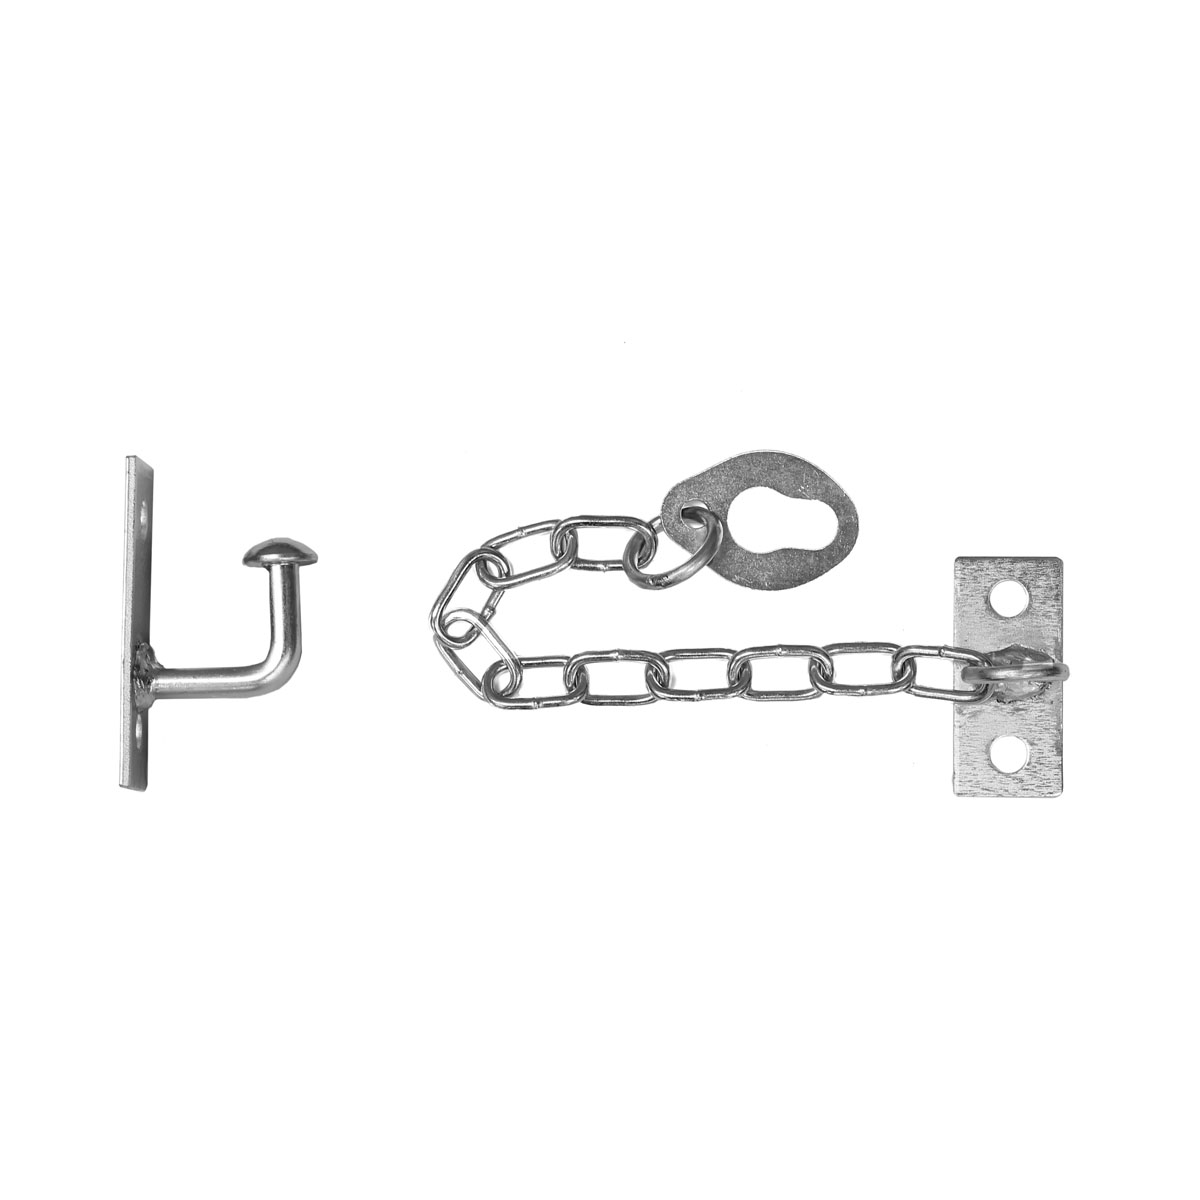 13792 gate fitting ring latch set product